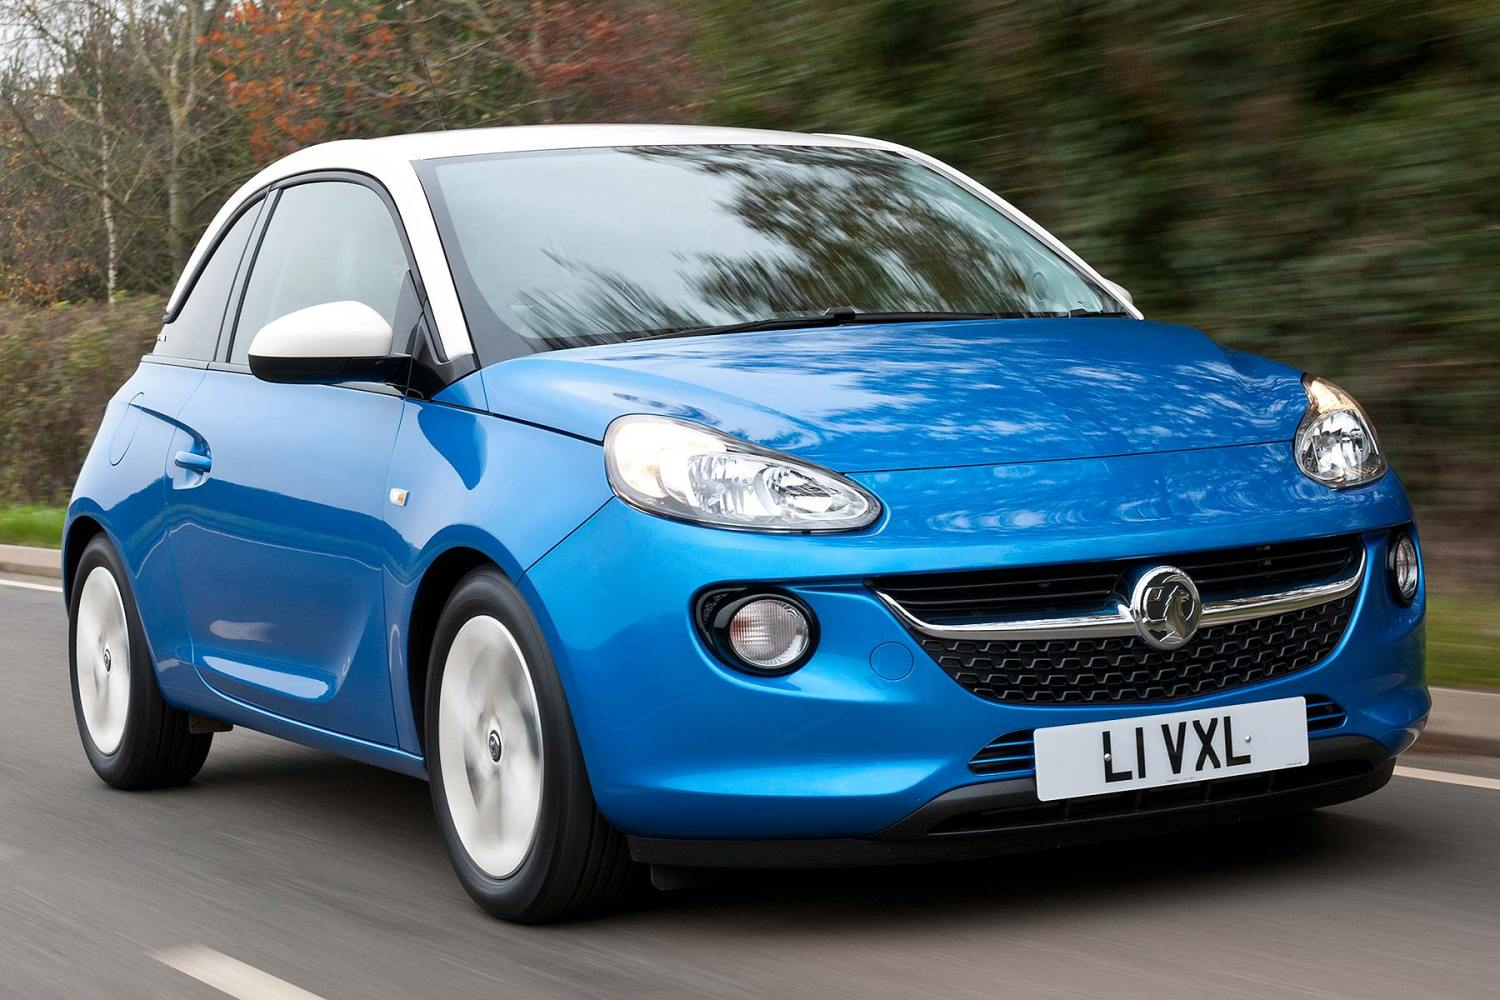 The cheapest cars to insure for 17-18 year olds: Vauxhall Adam